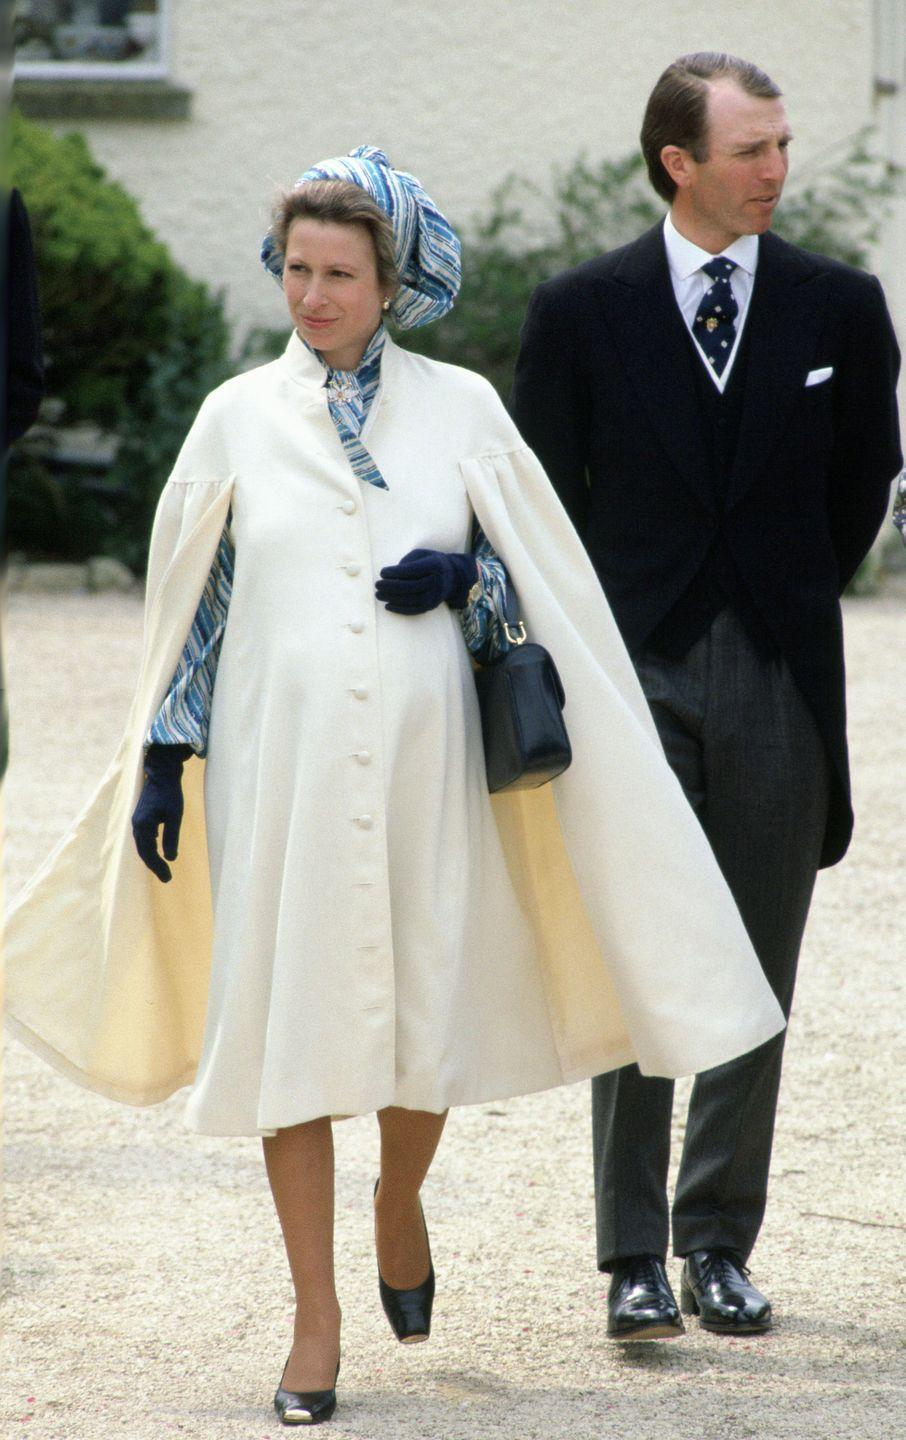 <p>Princess Anne also took the trusty coat and dress pairing into a more dramatic direction as well during her second pregnancy. Here, she wears a flowing cream-hued cape with a bold patterned dress during an outing in her ninth month of pregnancy. </p>